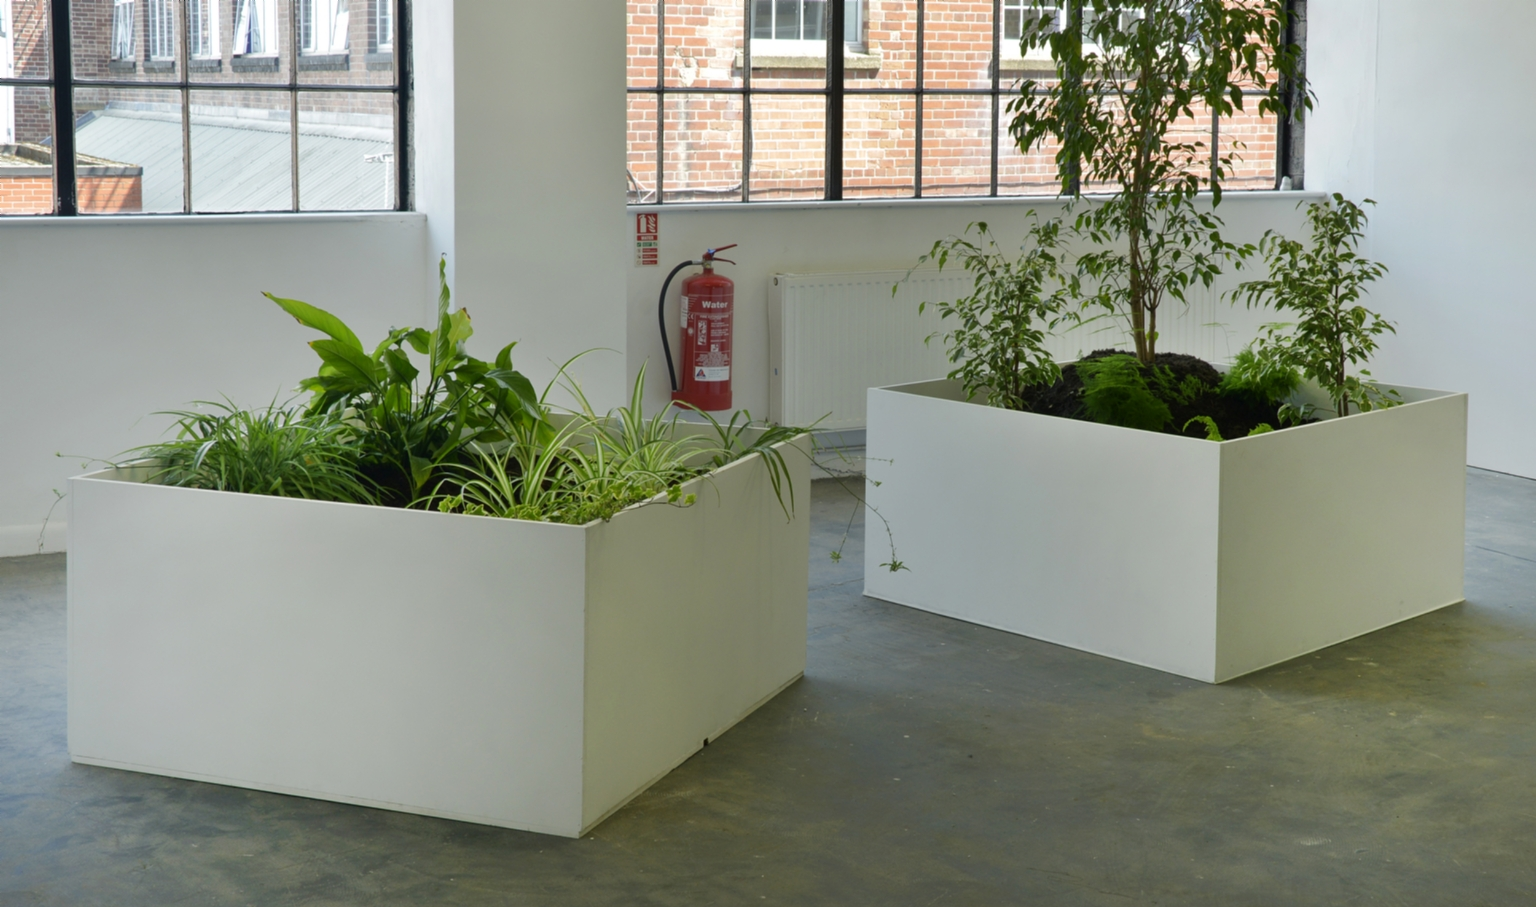 'An Encounter with Chlorophytum Comosum' (left) and 'An Encounter With Three Ficus Benjamina '